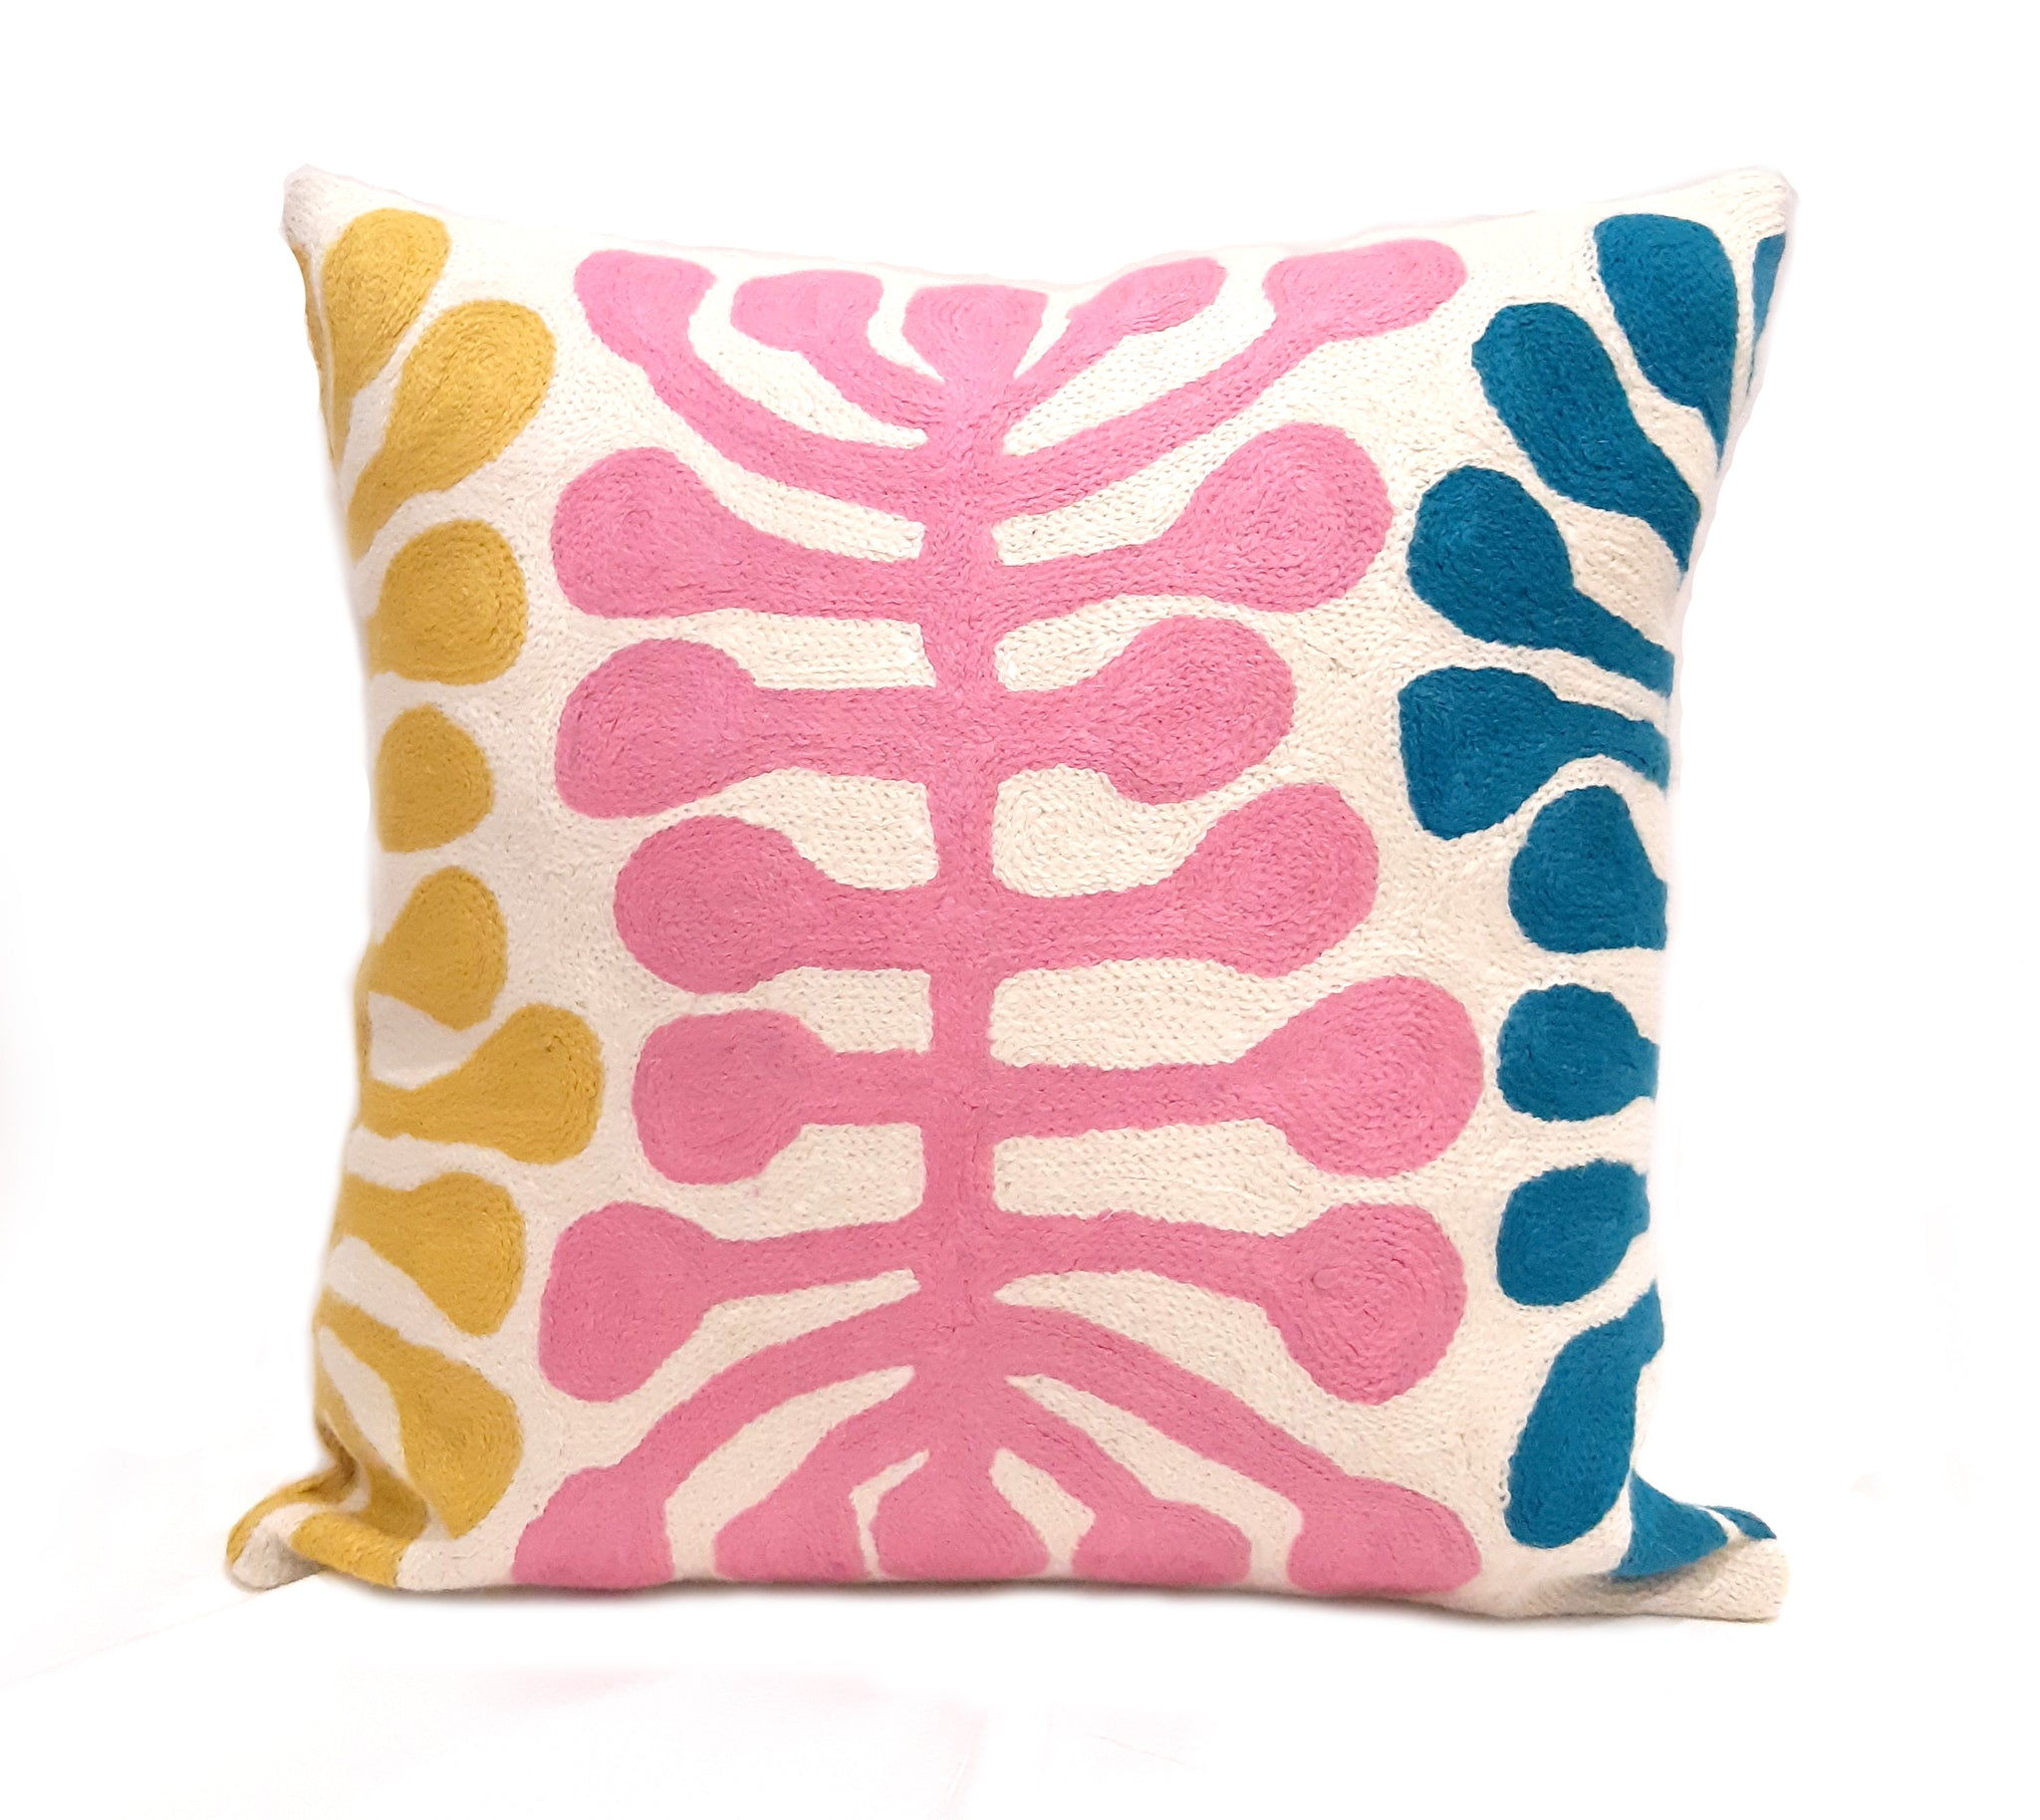 Mijtili Napurrula Cushion Cover